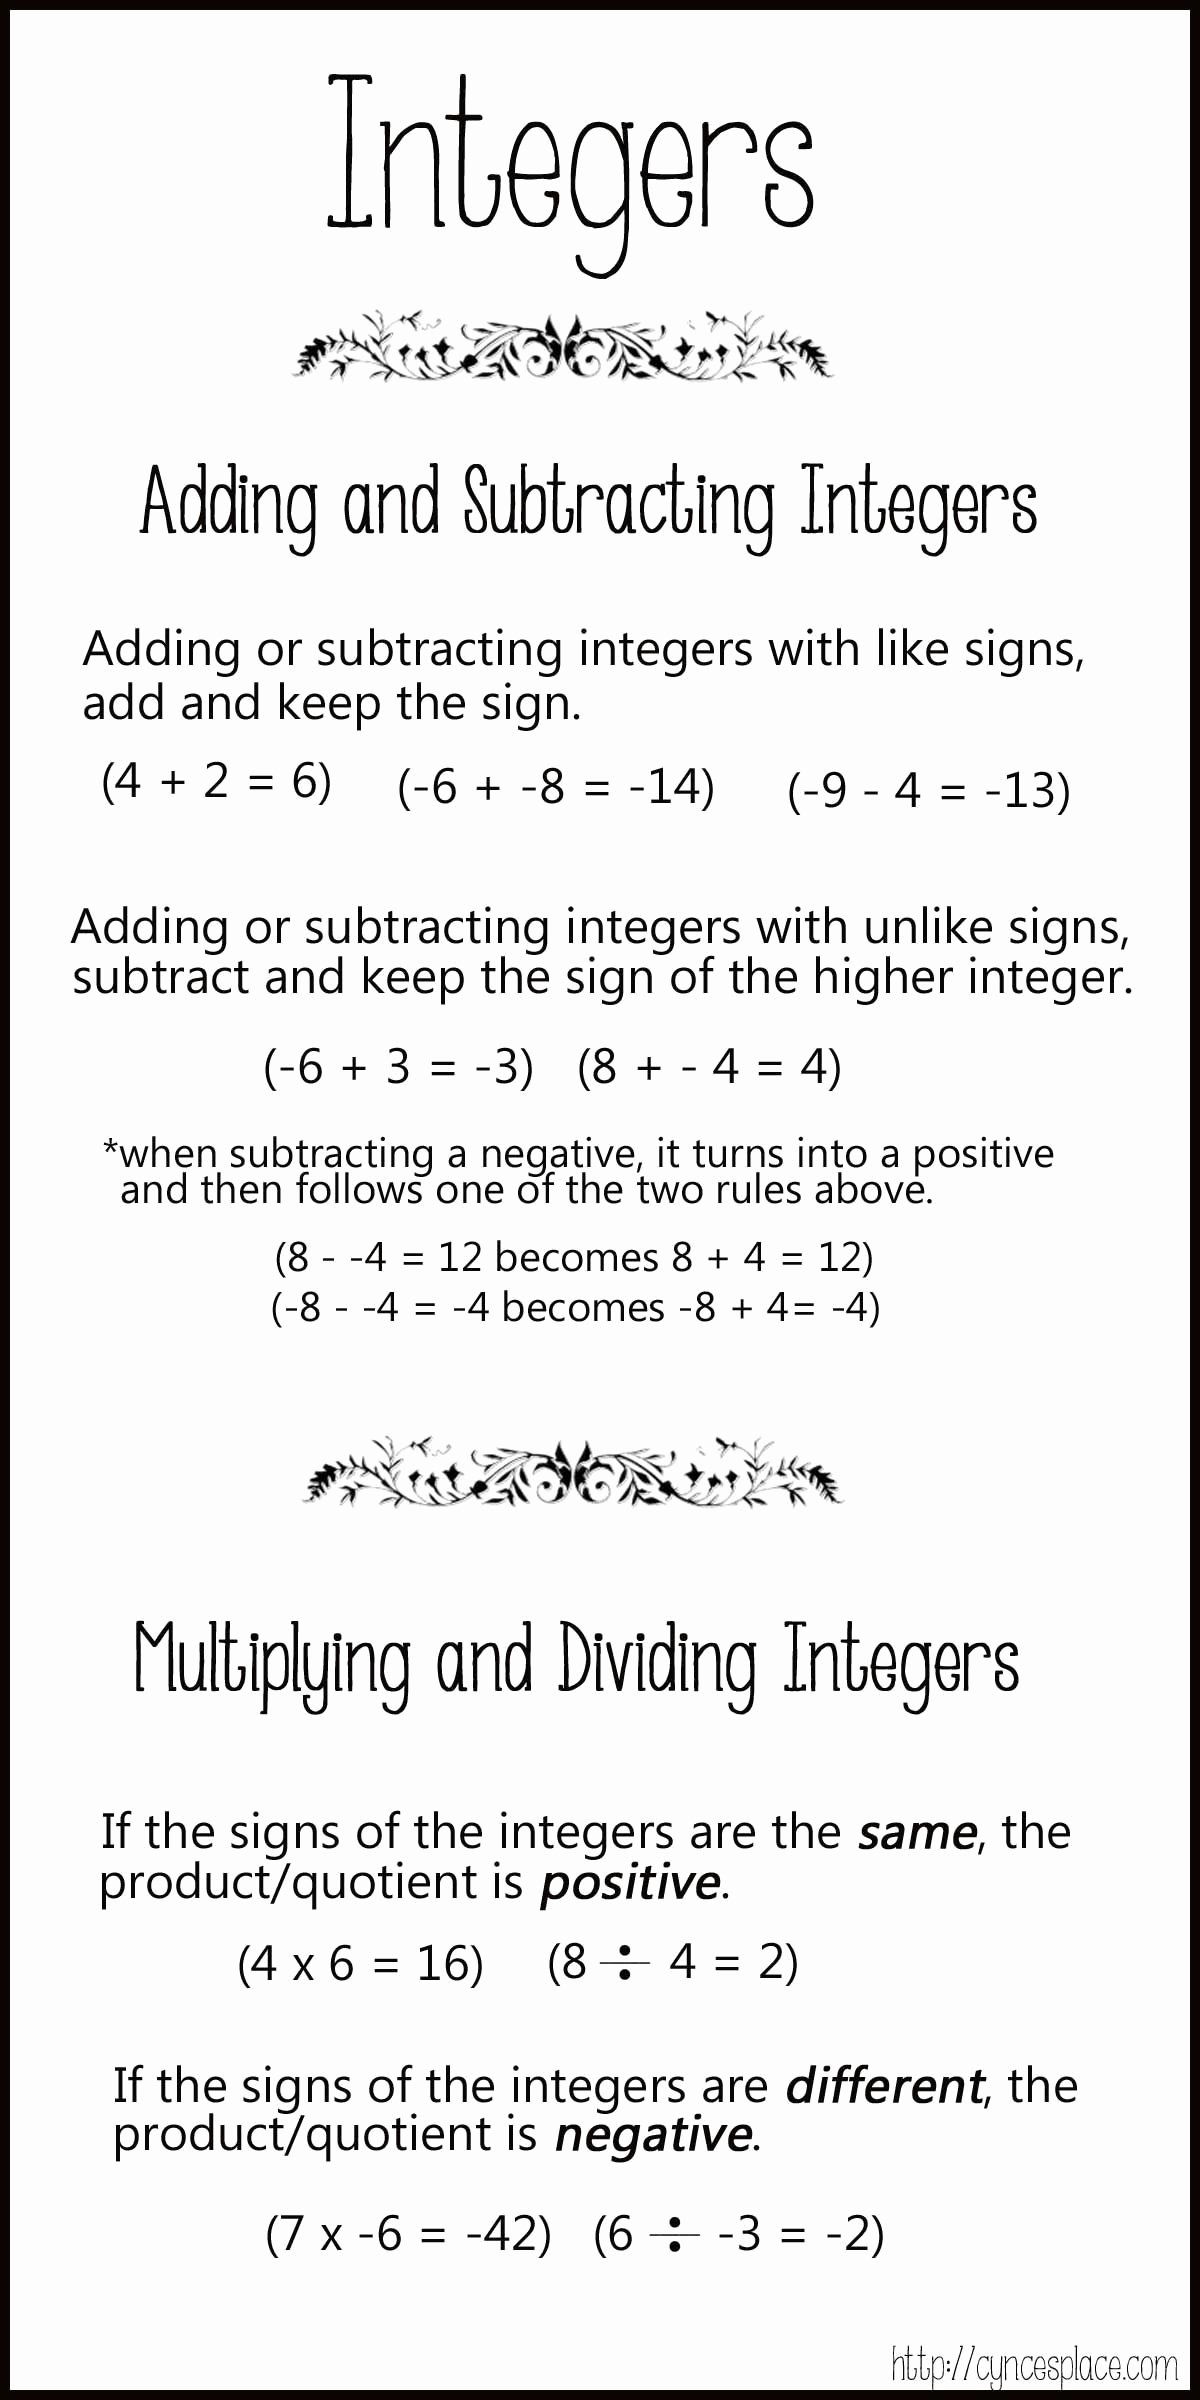 Multiplying and Dividing Integers Worksheet Elegant Adding Subtracting Multiplying and Dividing Integers Chart